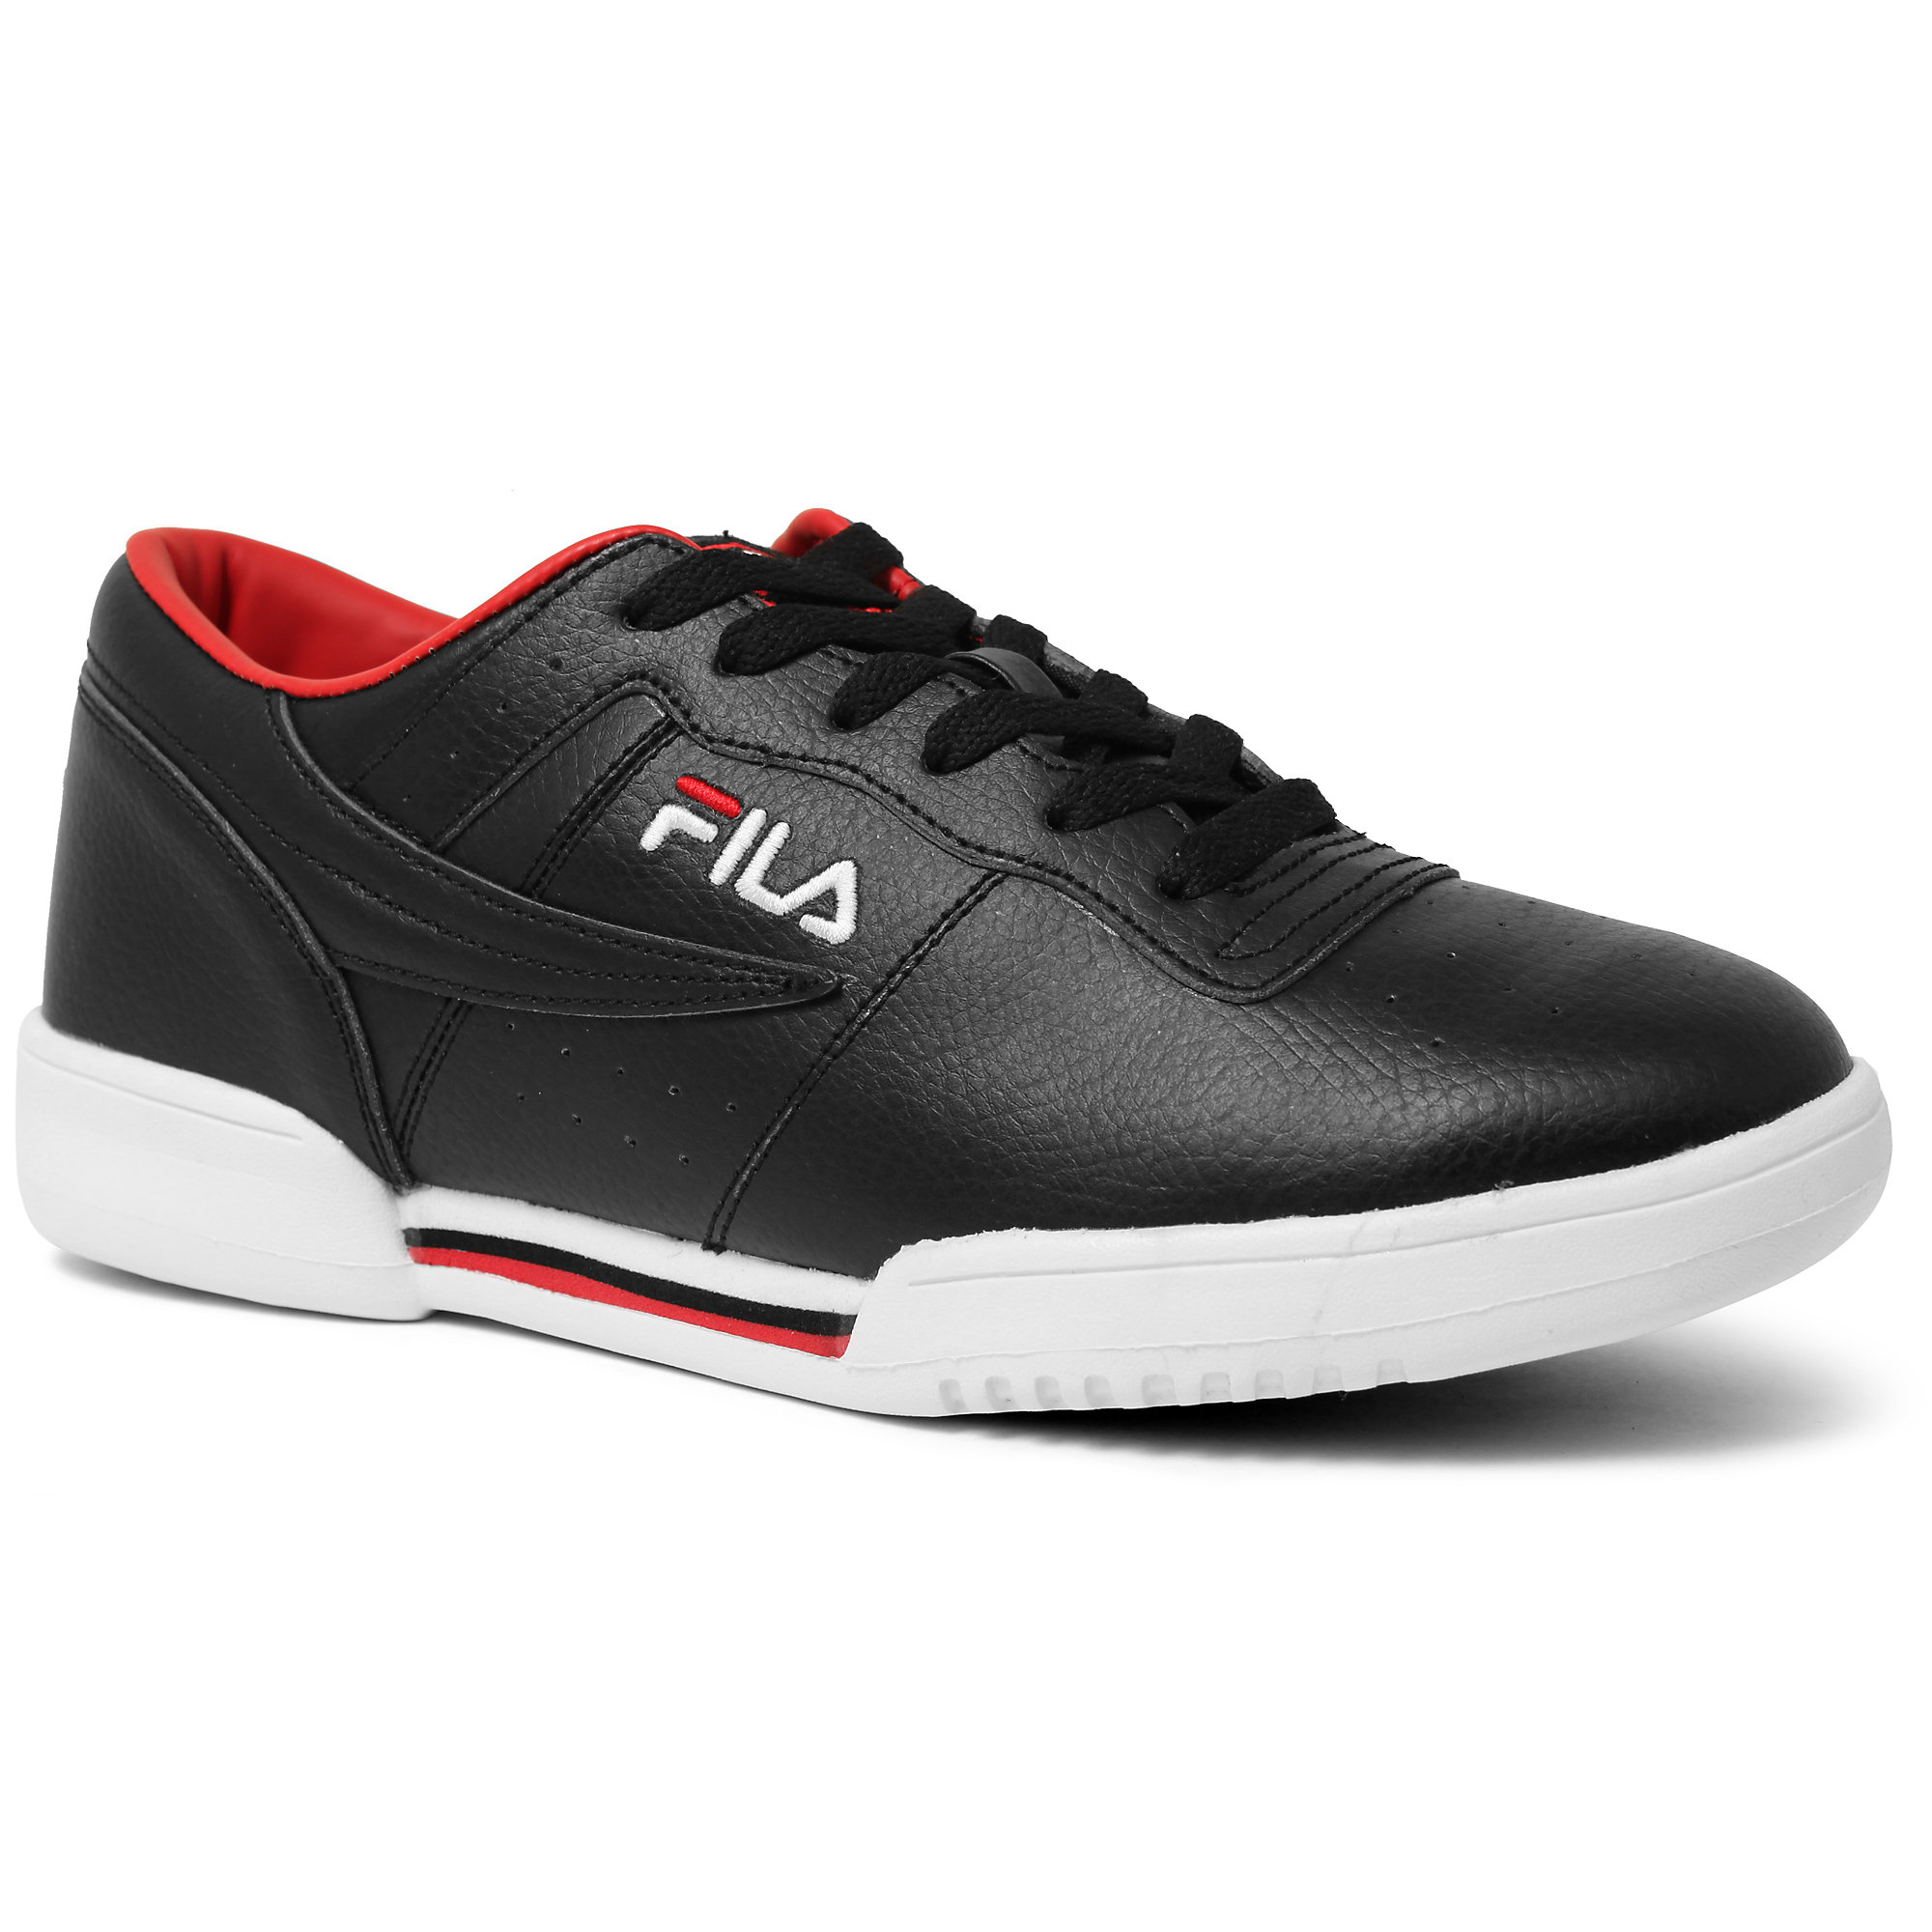 men's original fitness in black/ white/ chinese red